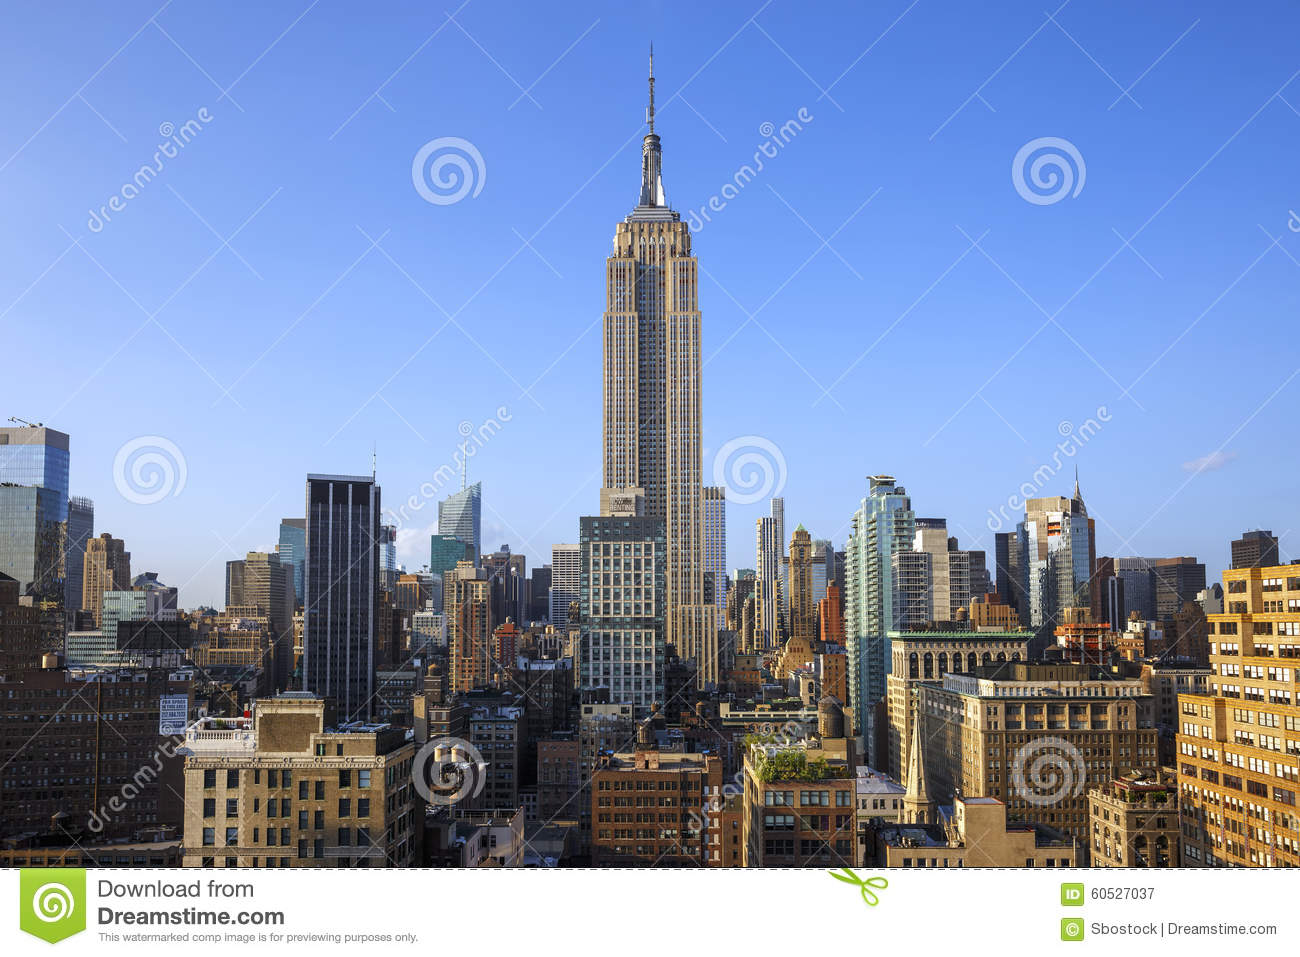 New York City Manhattan Midtown View With Empire State Building